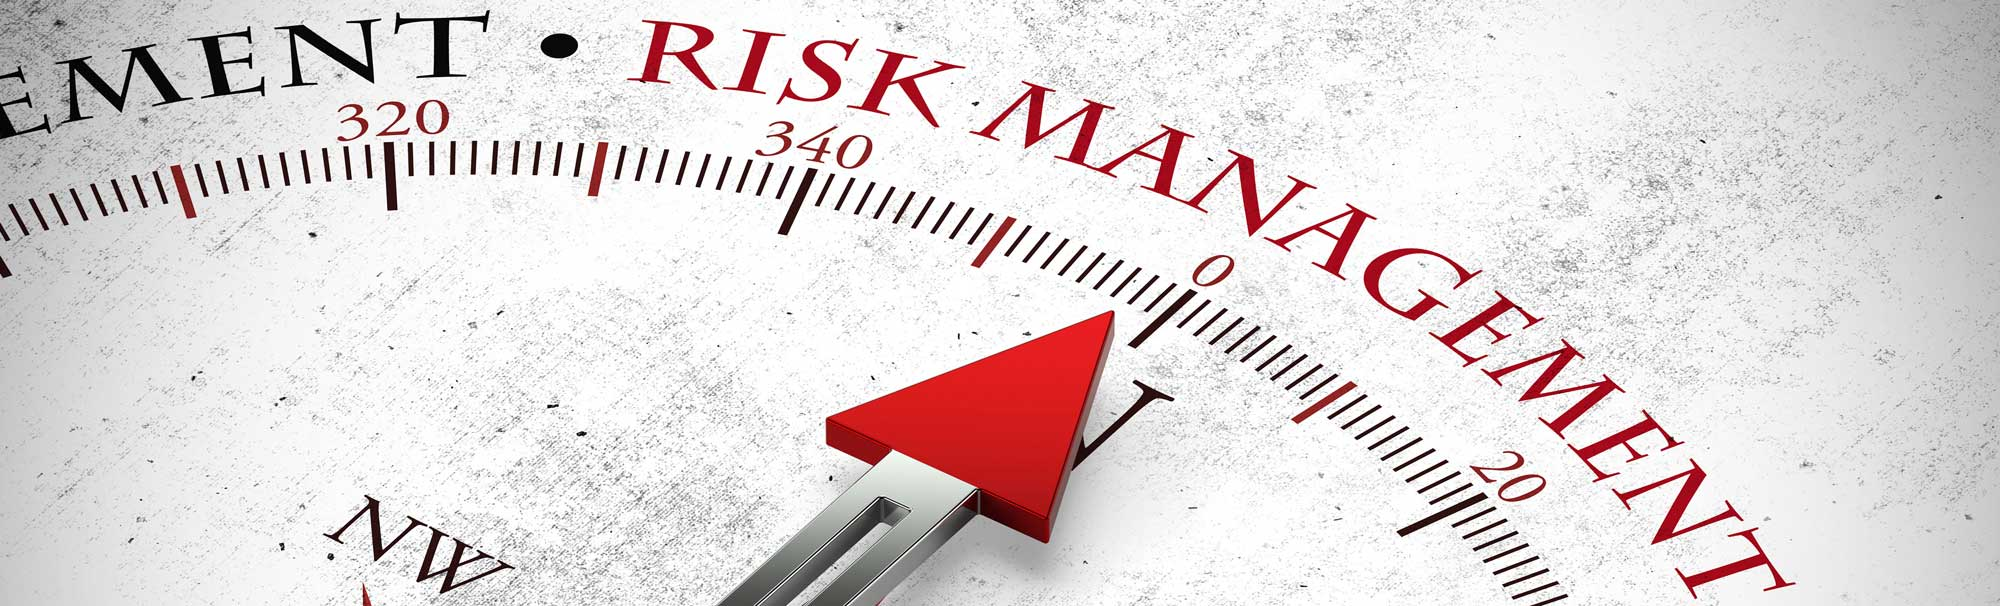 compass needle pointing at risk management written in red